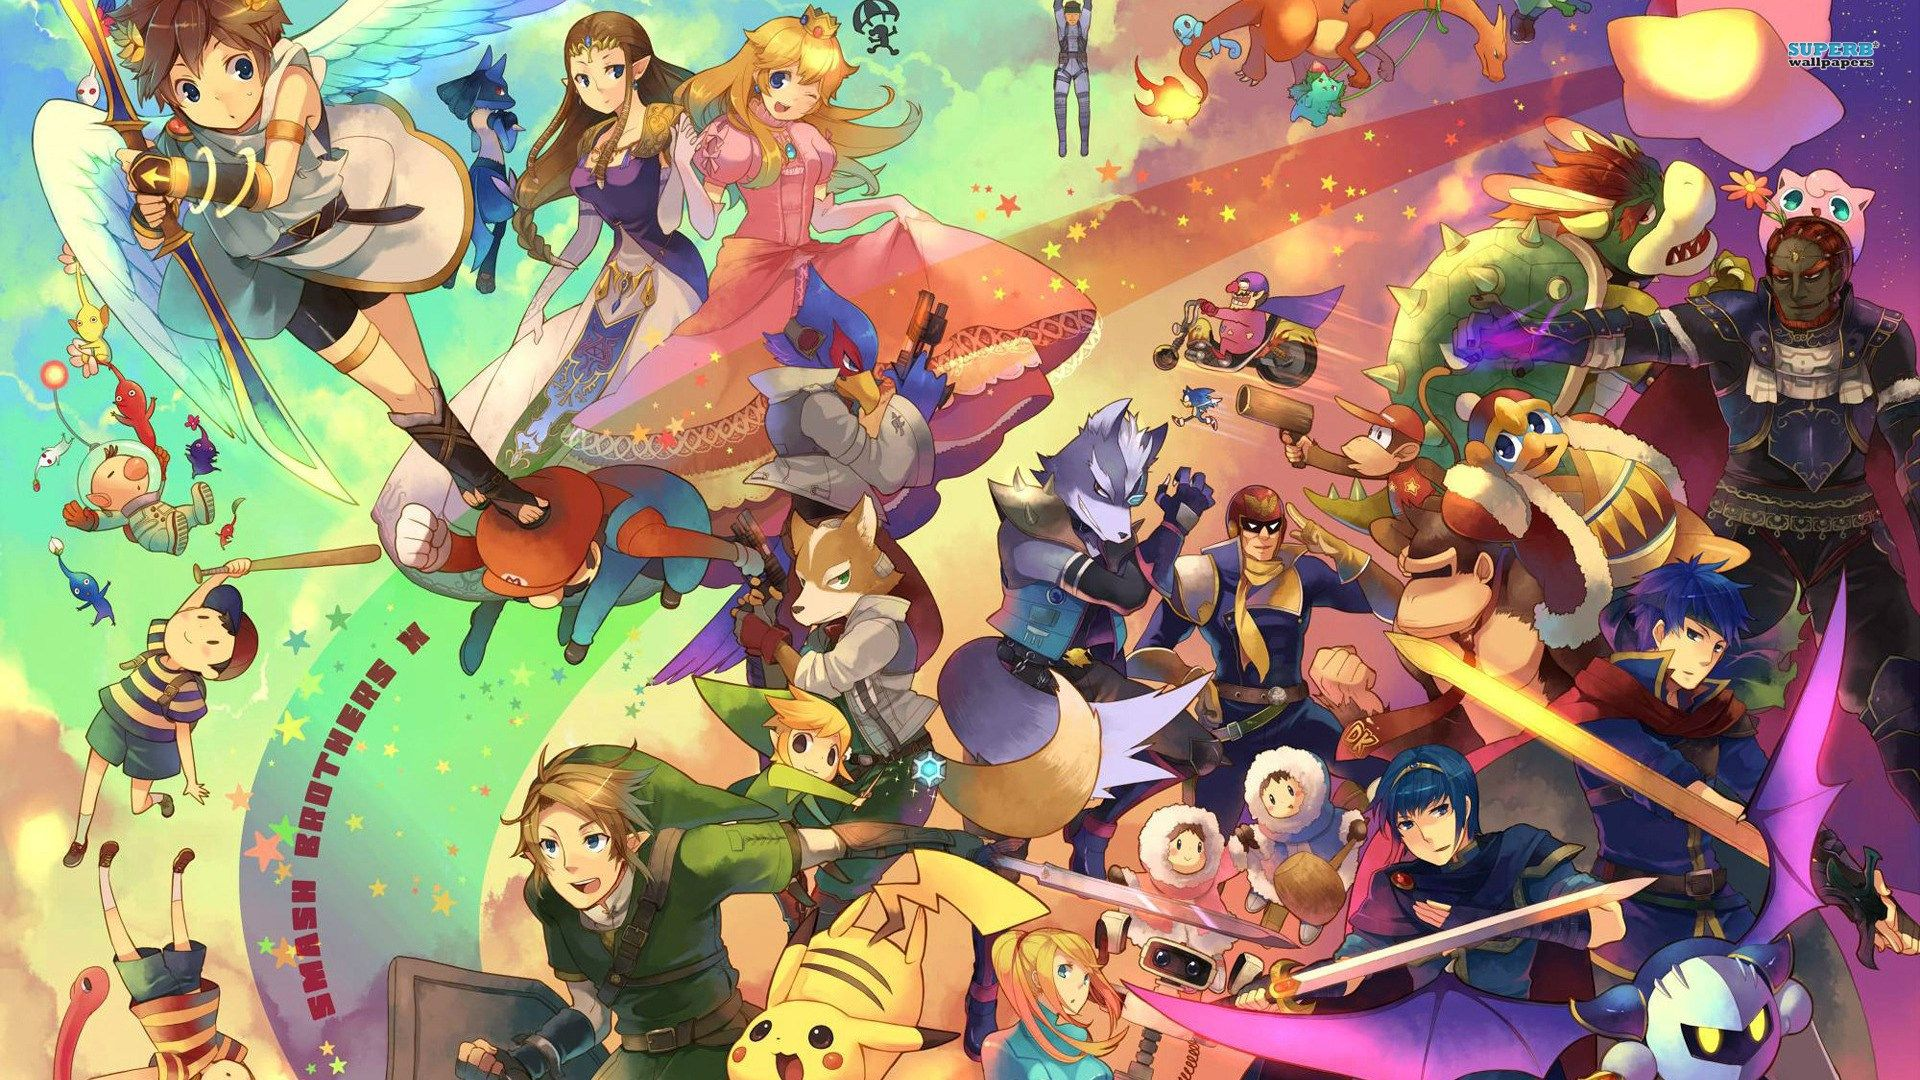 Photos Hd Super Smash Bros Wallpaper Smash Bros Super Smash